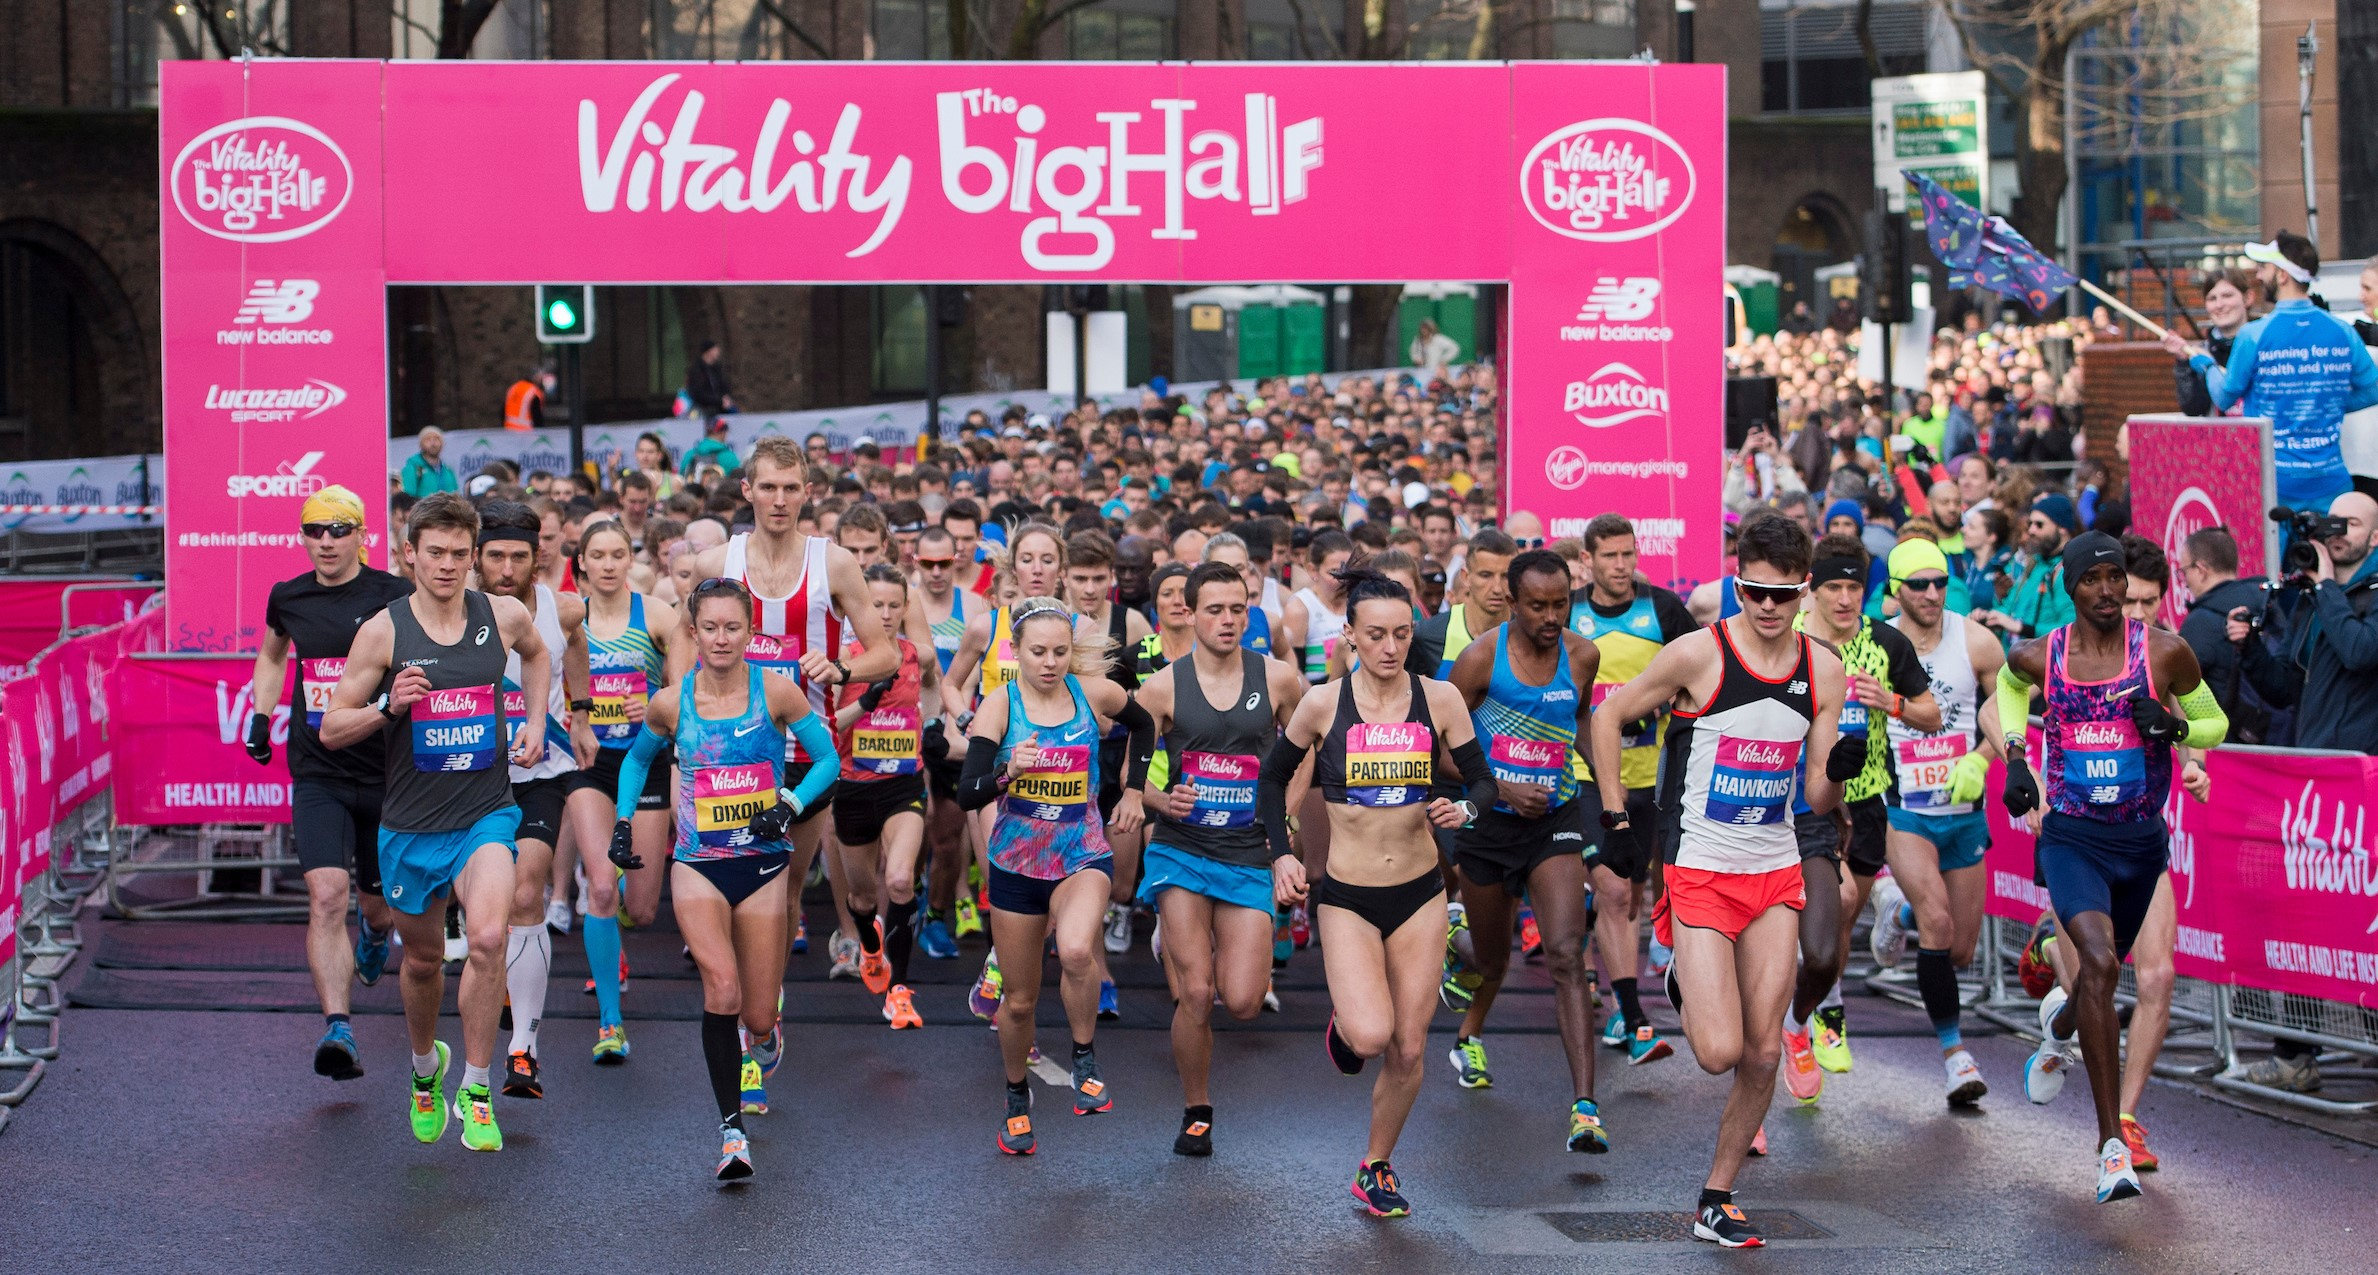 Picture shows runners at the start line of the Vitality Big Half 2019